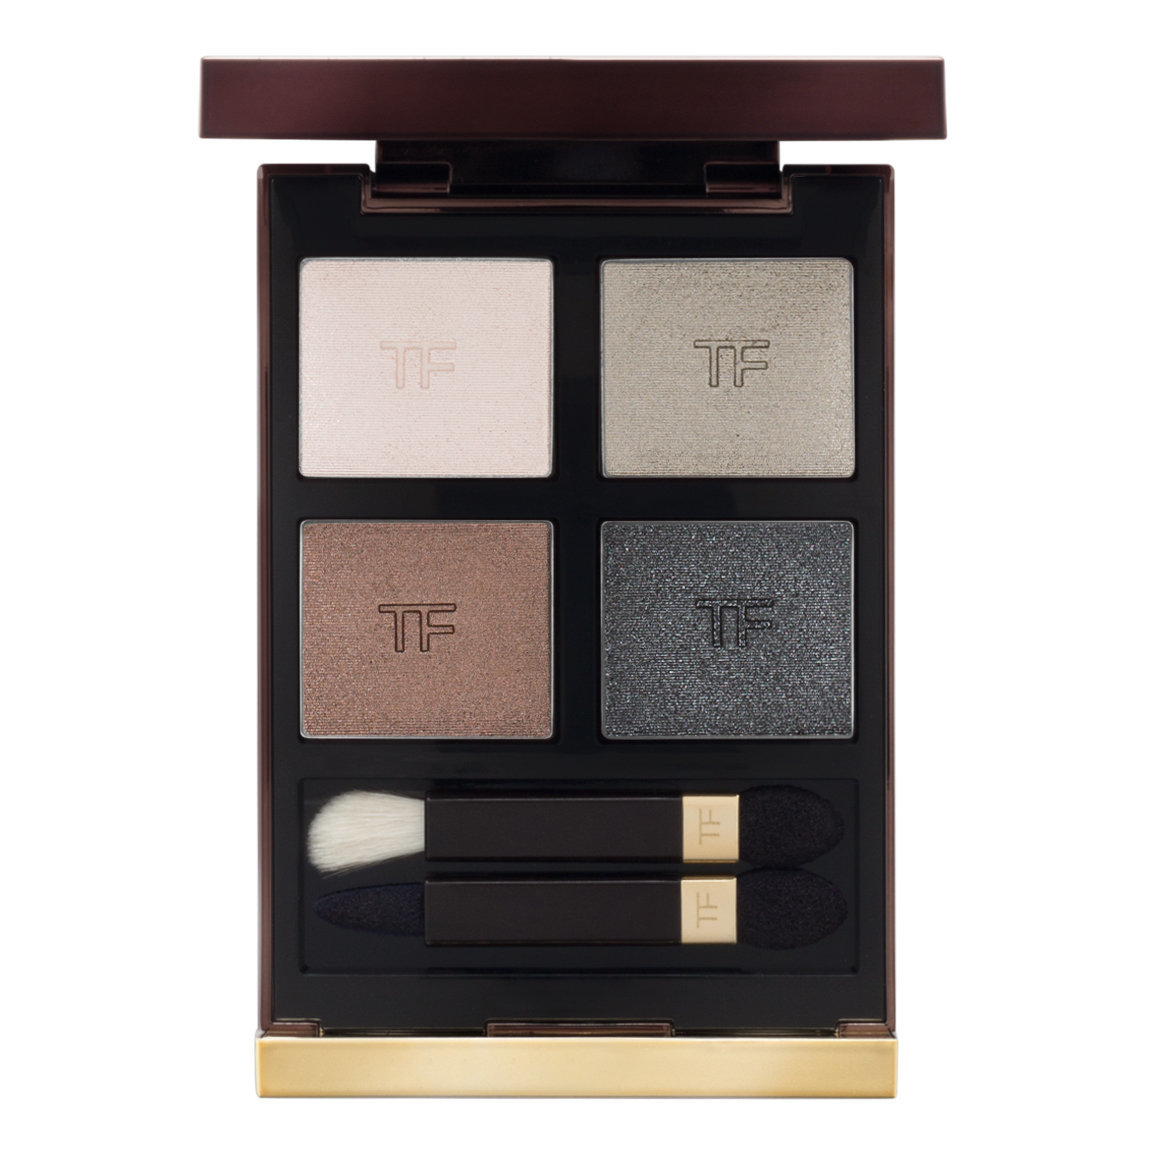 TOM FORD Eye Color Quad Double Indemnity product swatch.